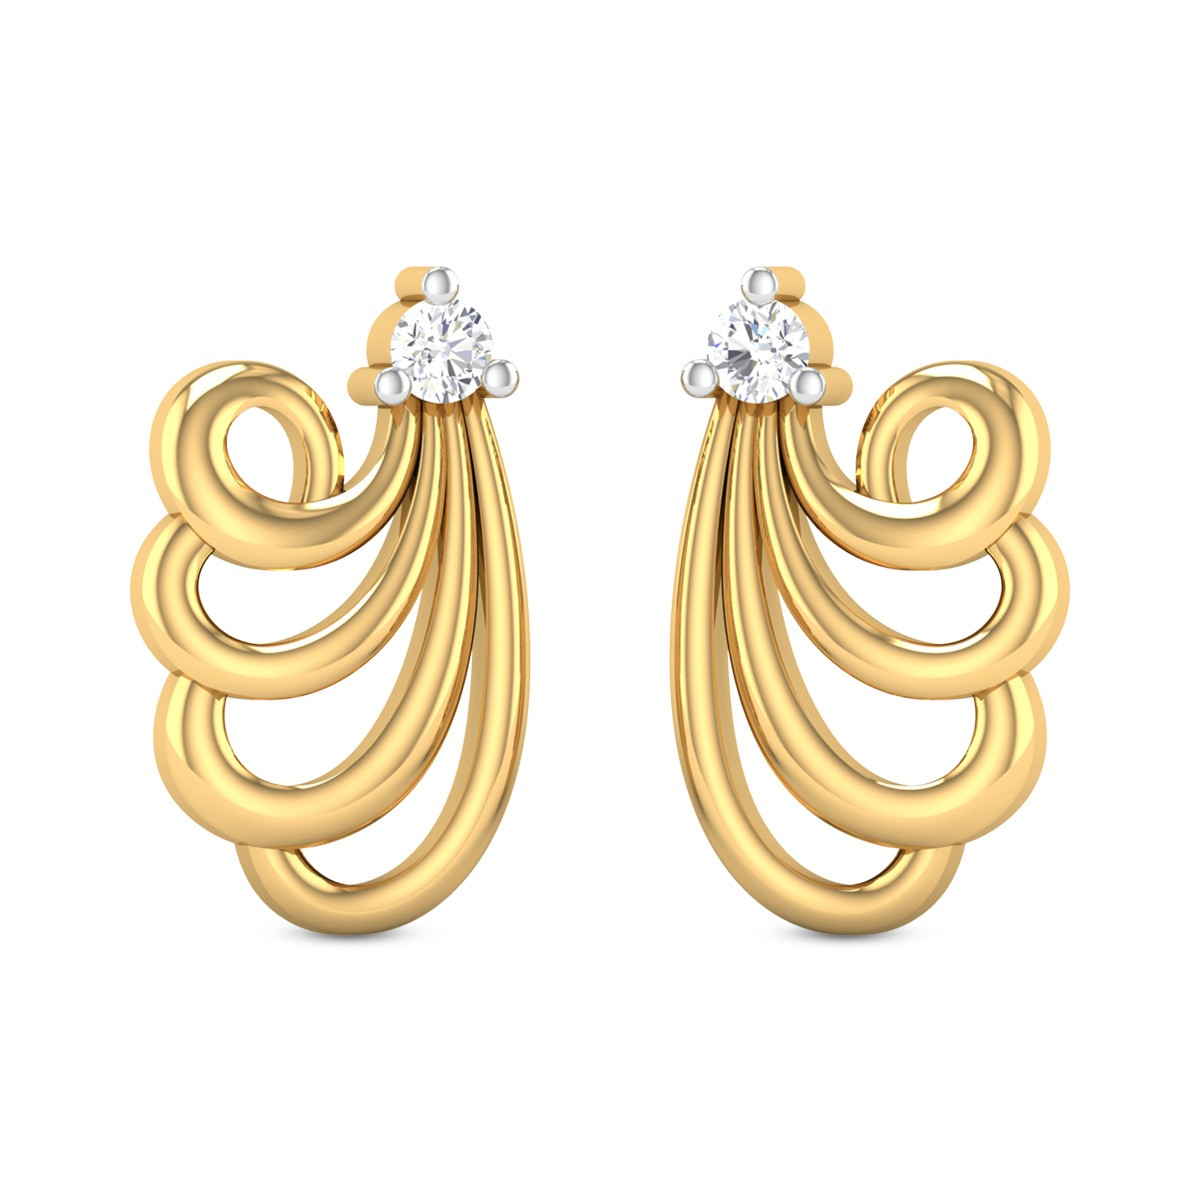 Nealla Diamond Earrings